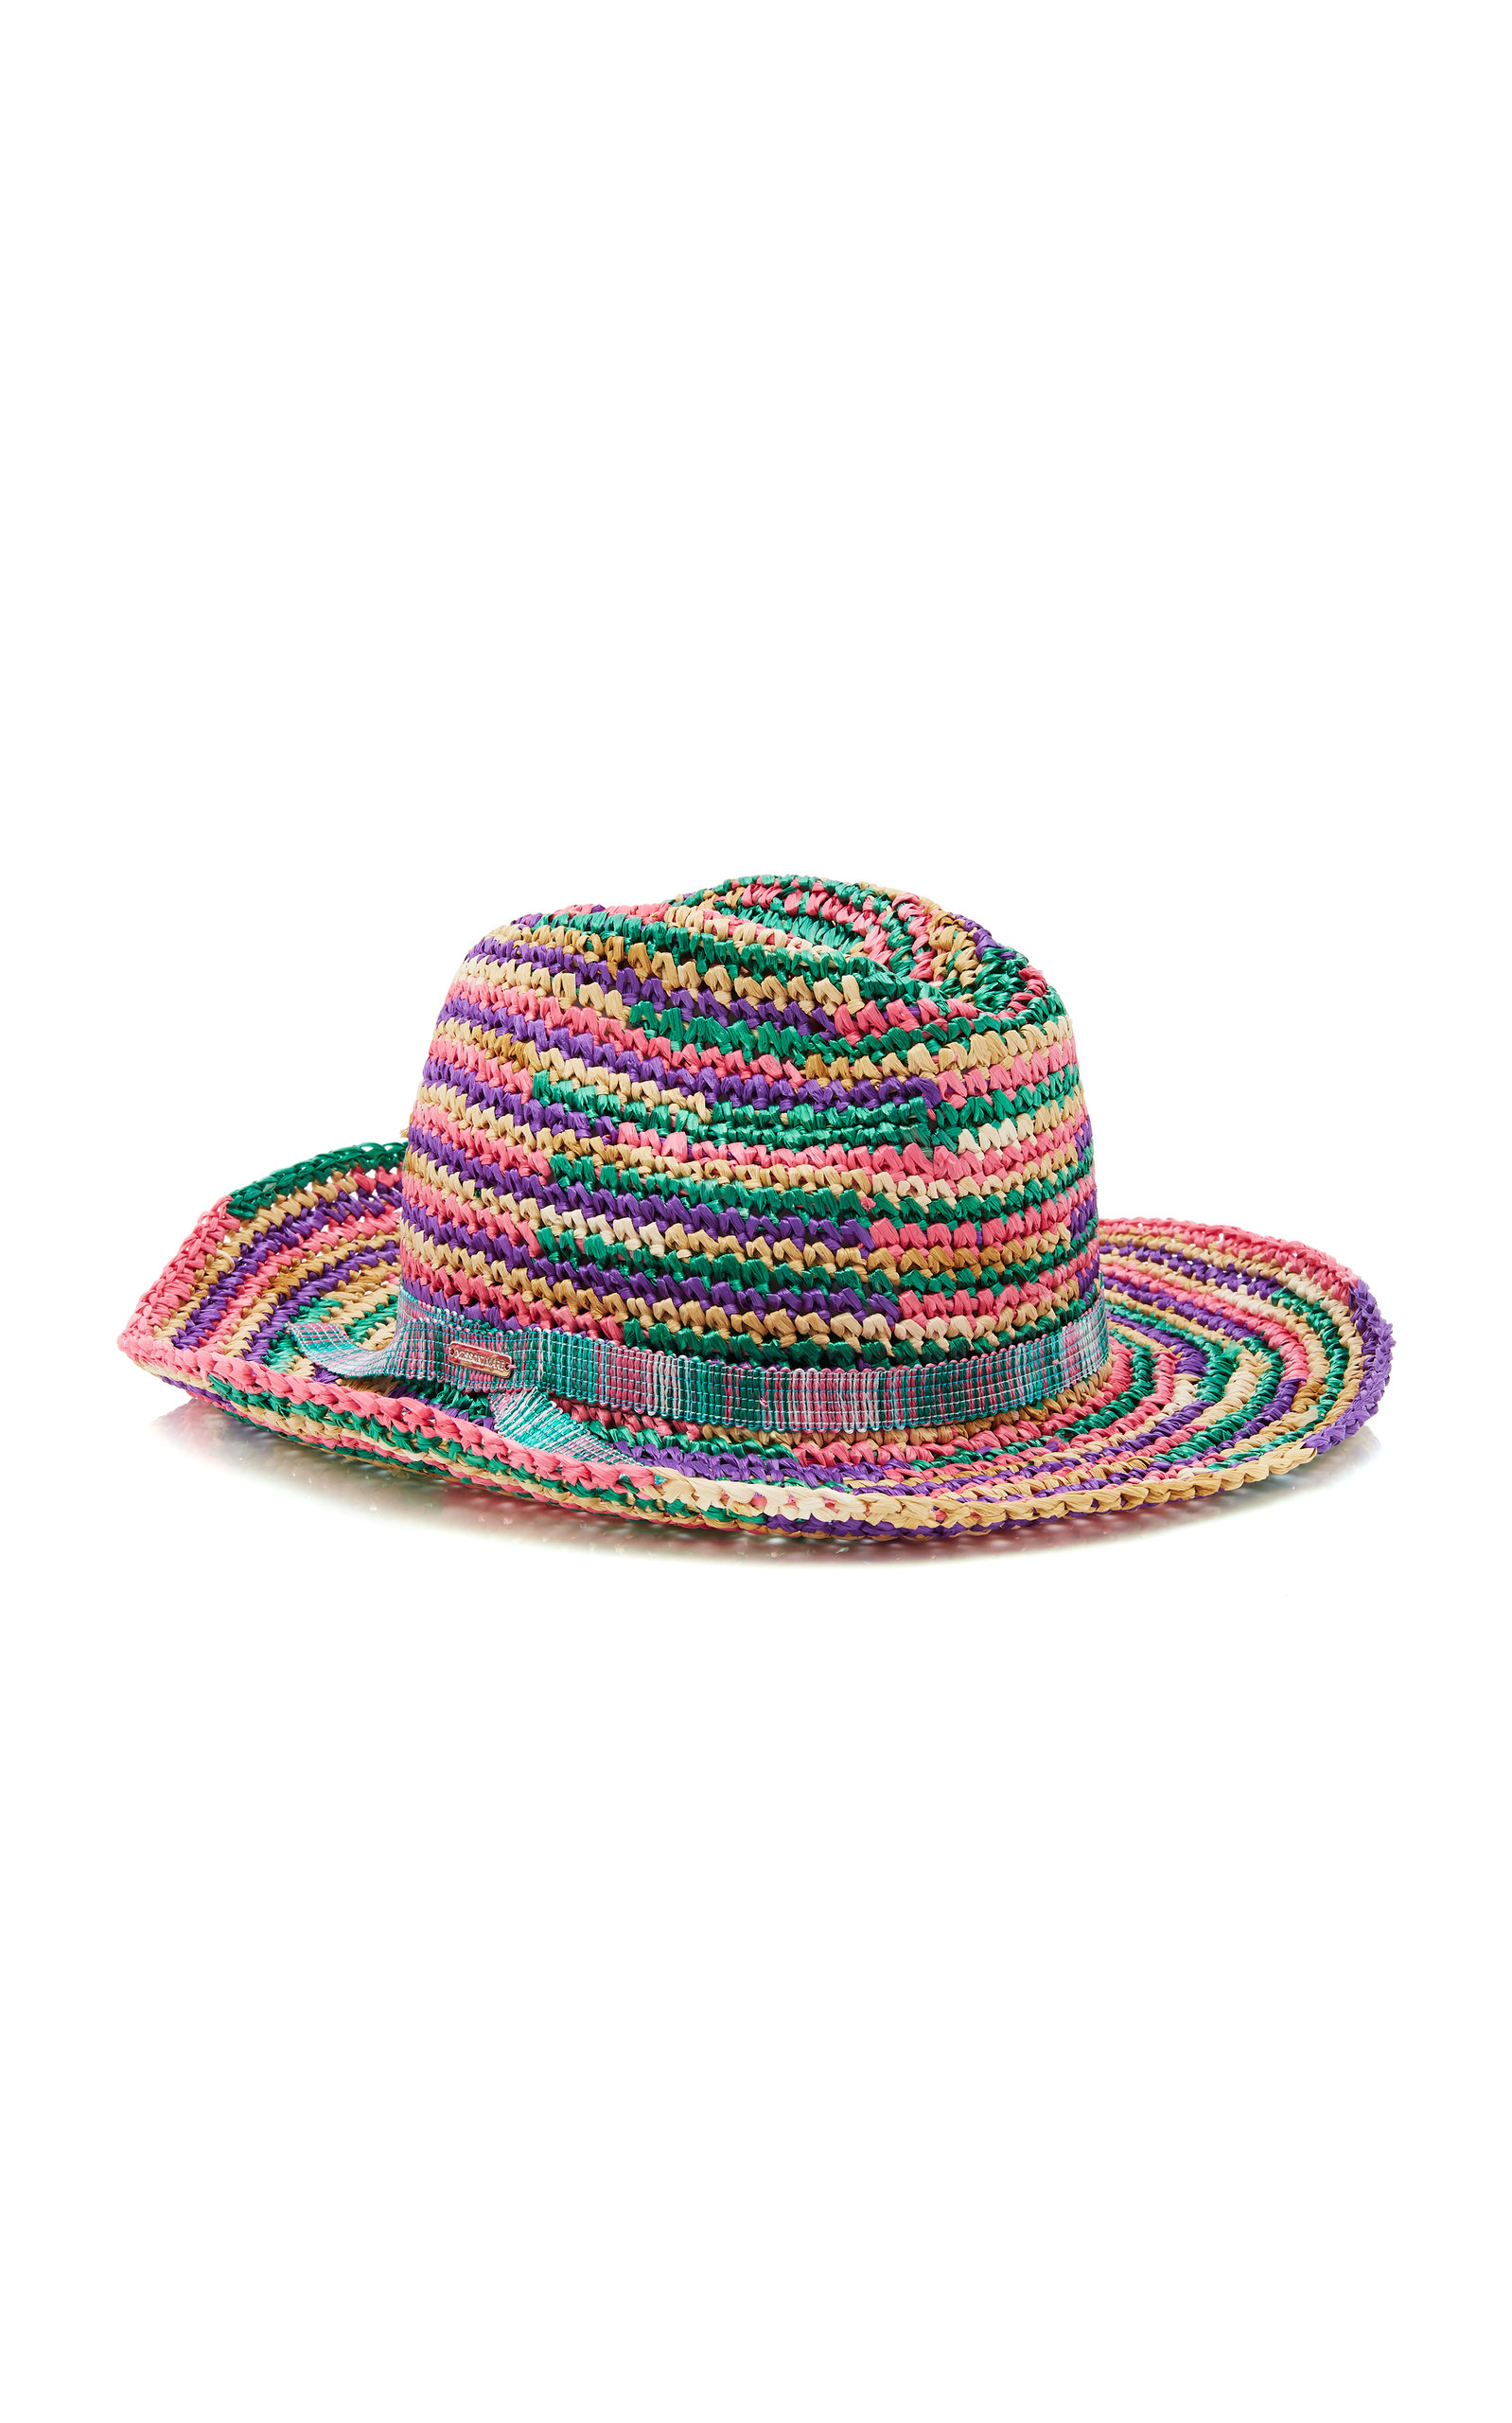 Multicolored Braided Hat Missoni 8KgOz7JHXf